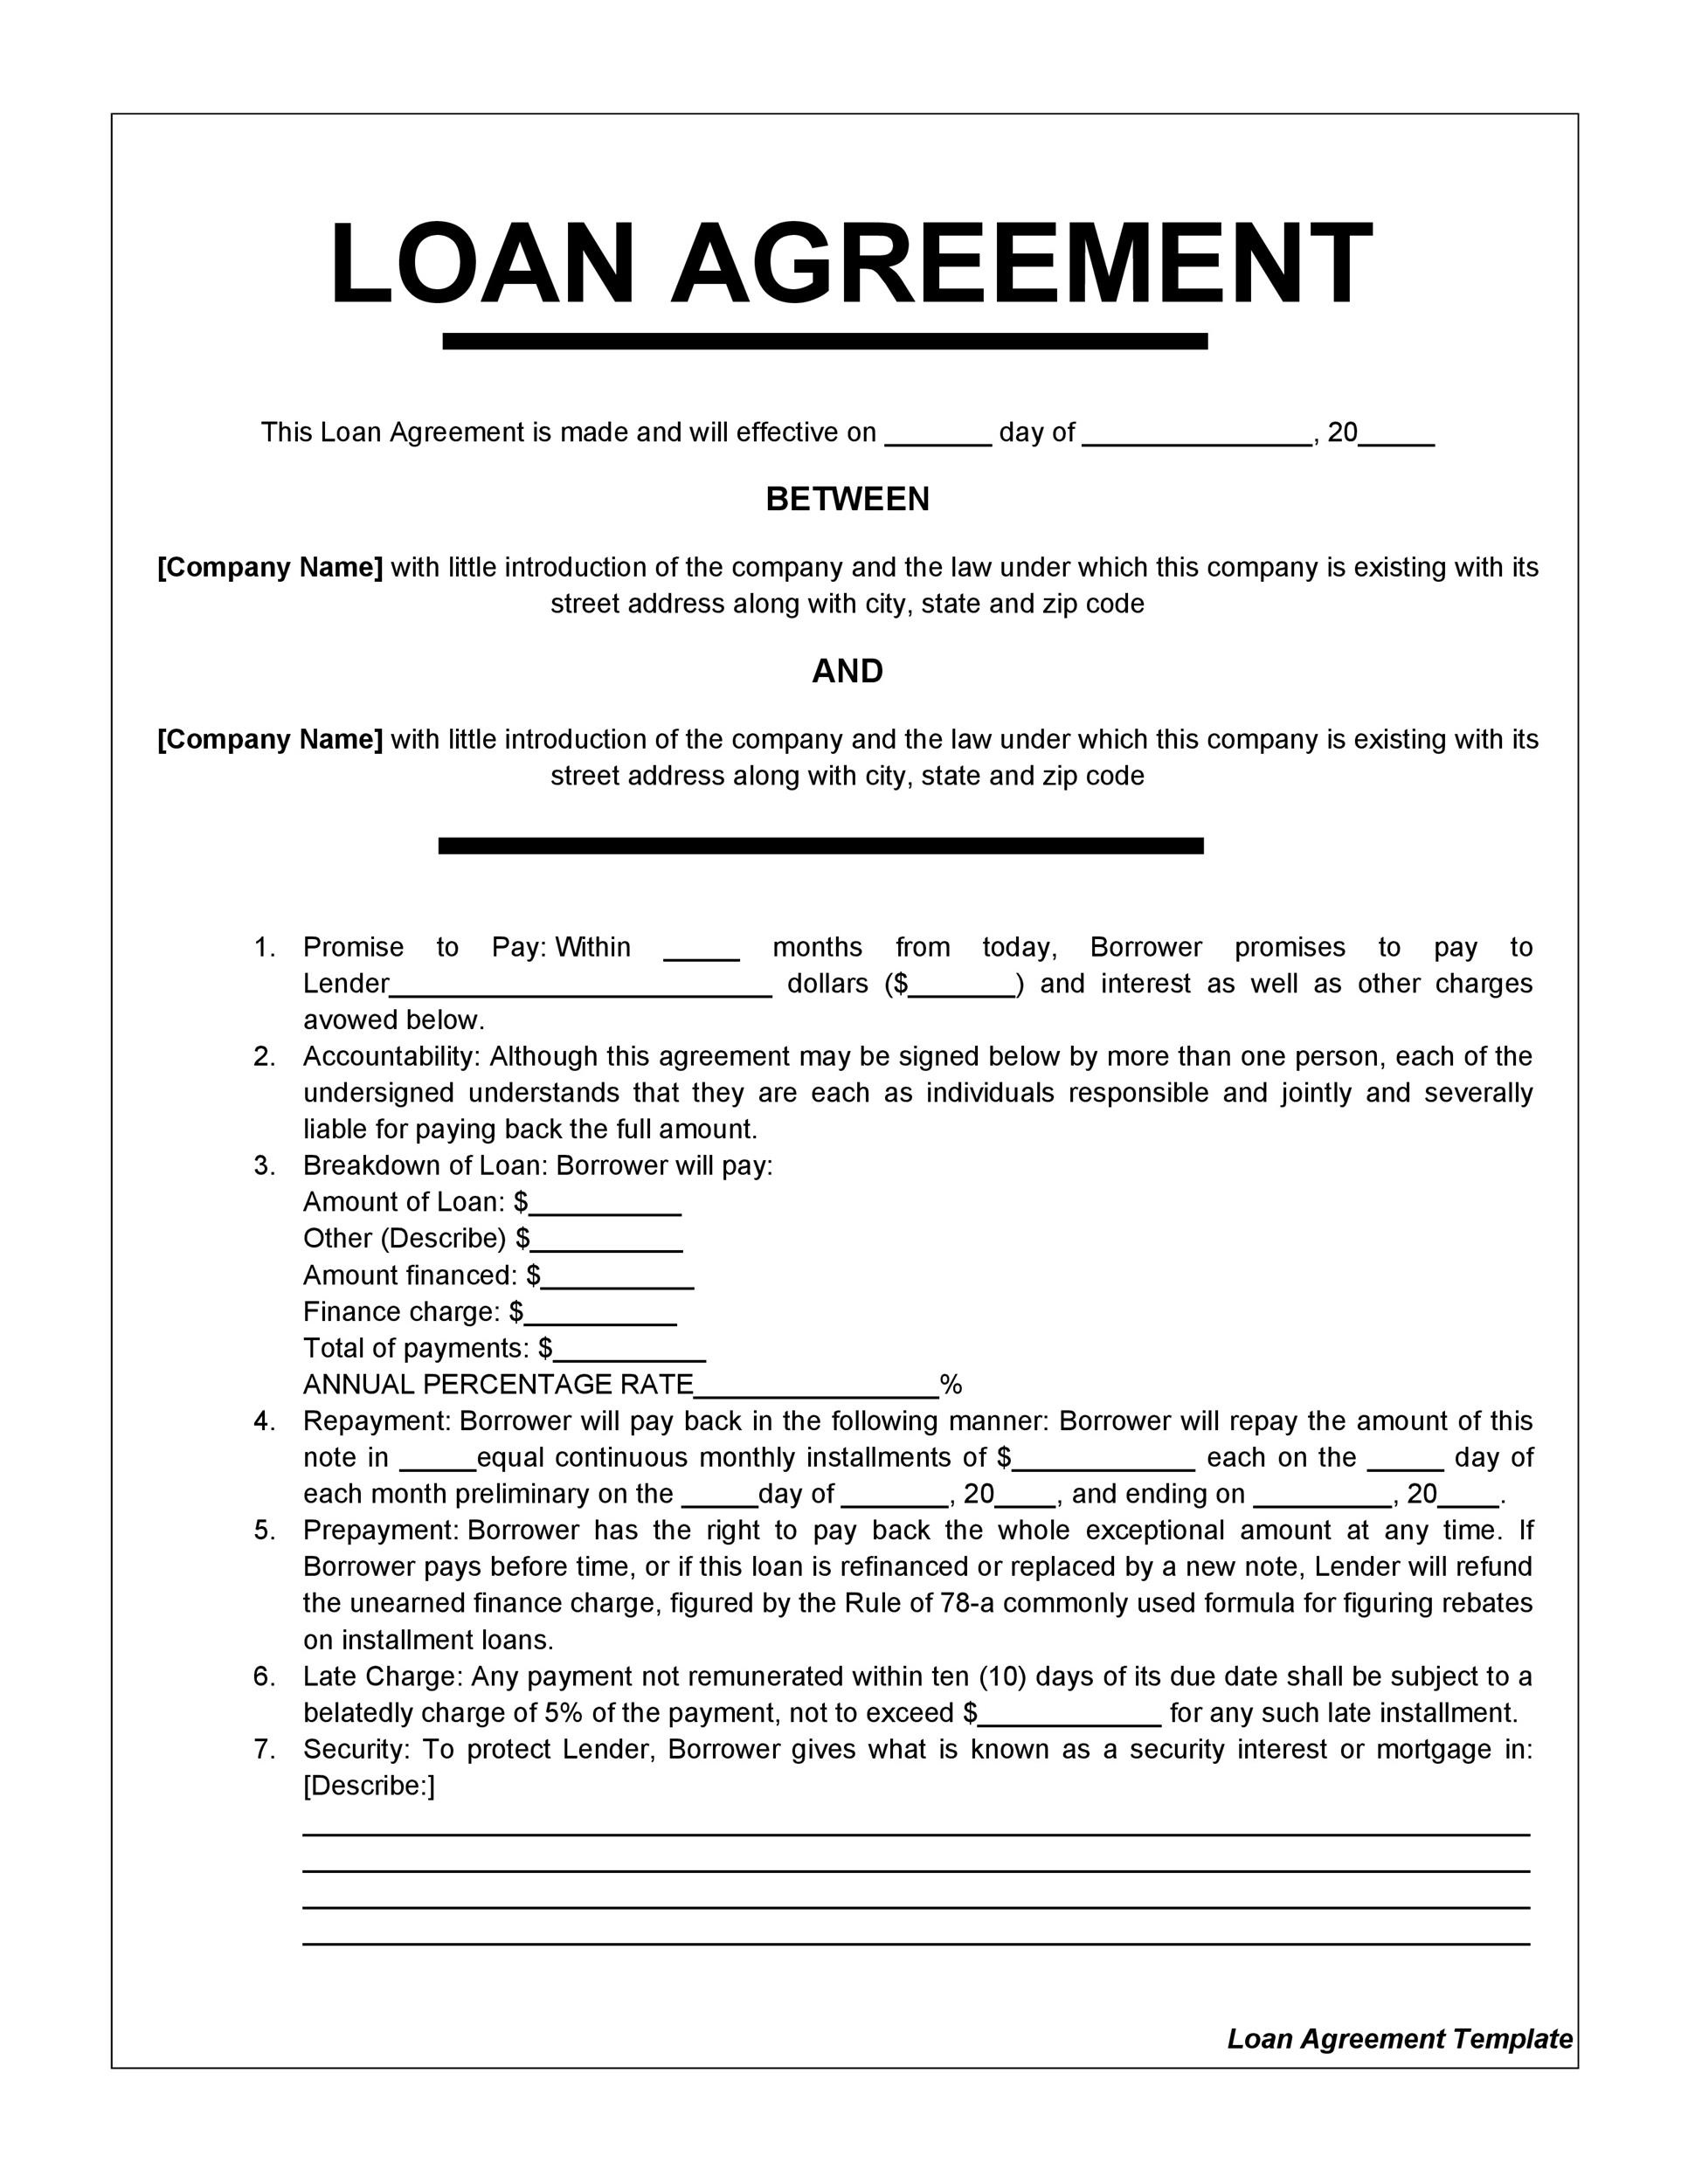 007 Fearsome Loan Agreement Template Free Image  Word Nz Family UkFull